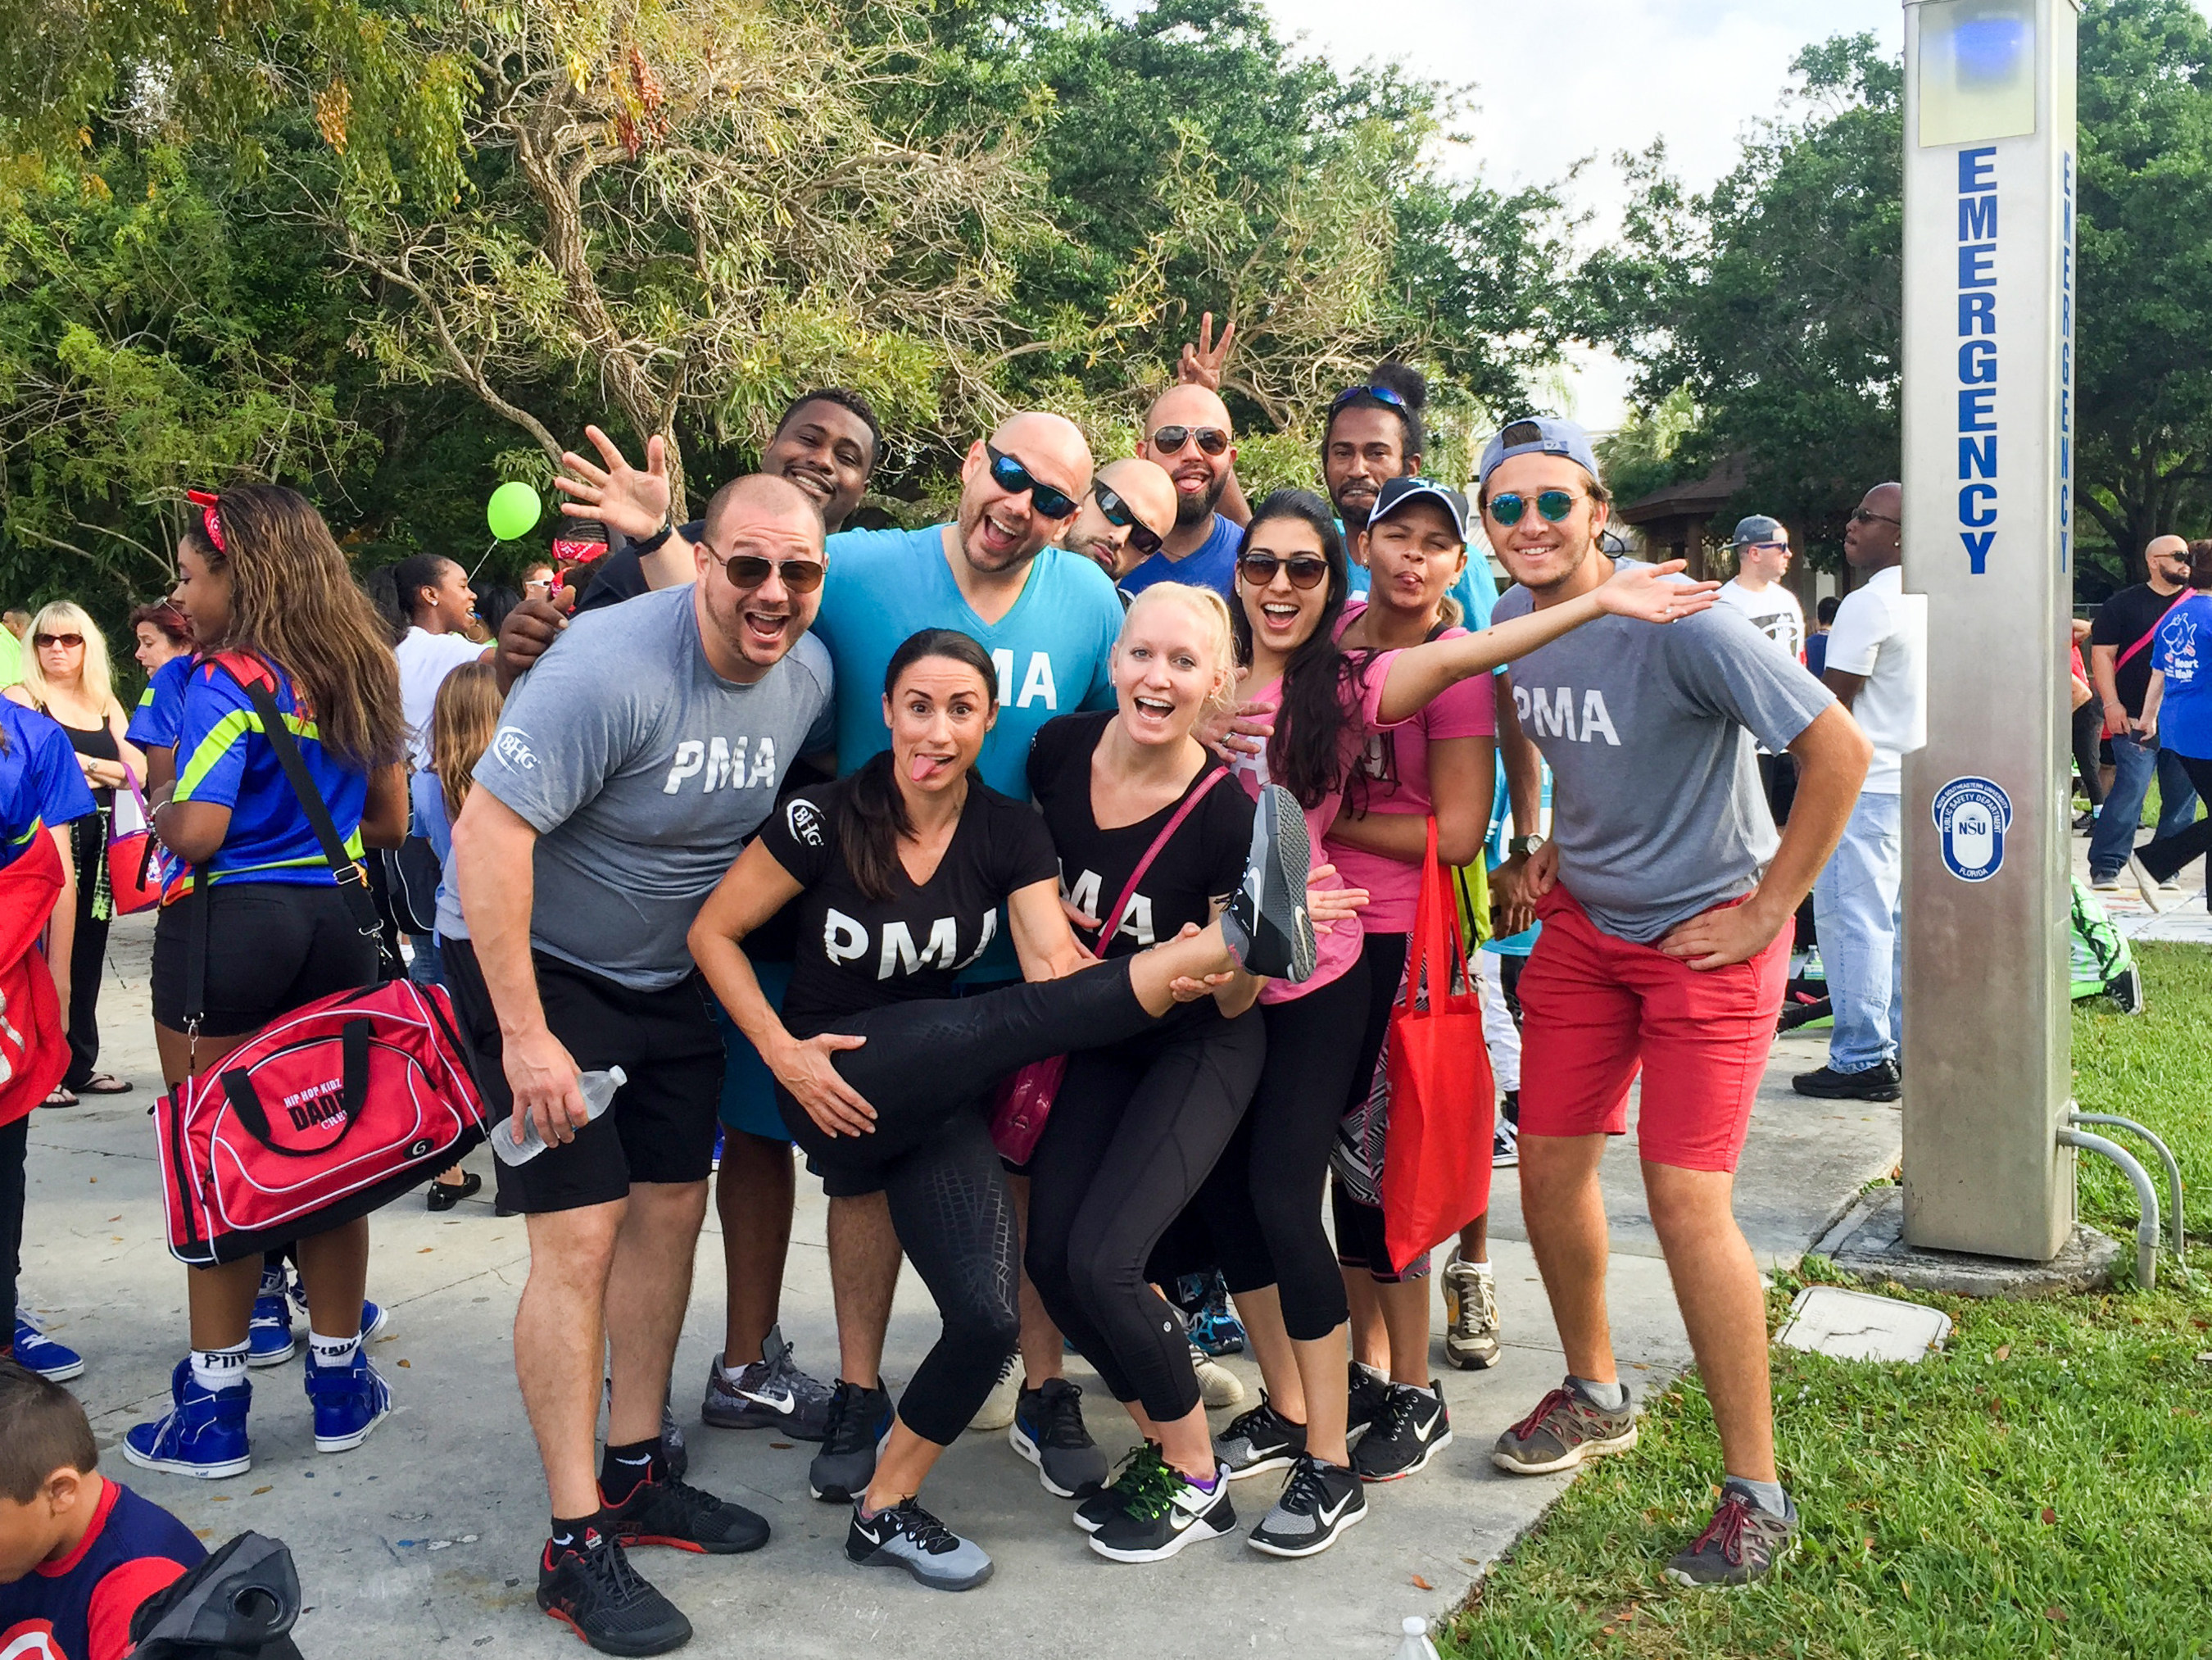 BHG employees participated in the Broward Heart Walk on Saturday, April 23 and raised $3,805 to support the American Heart Association.